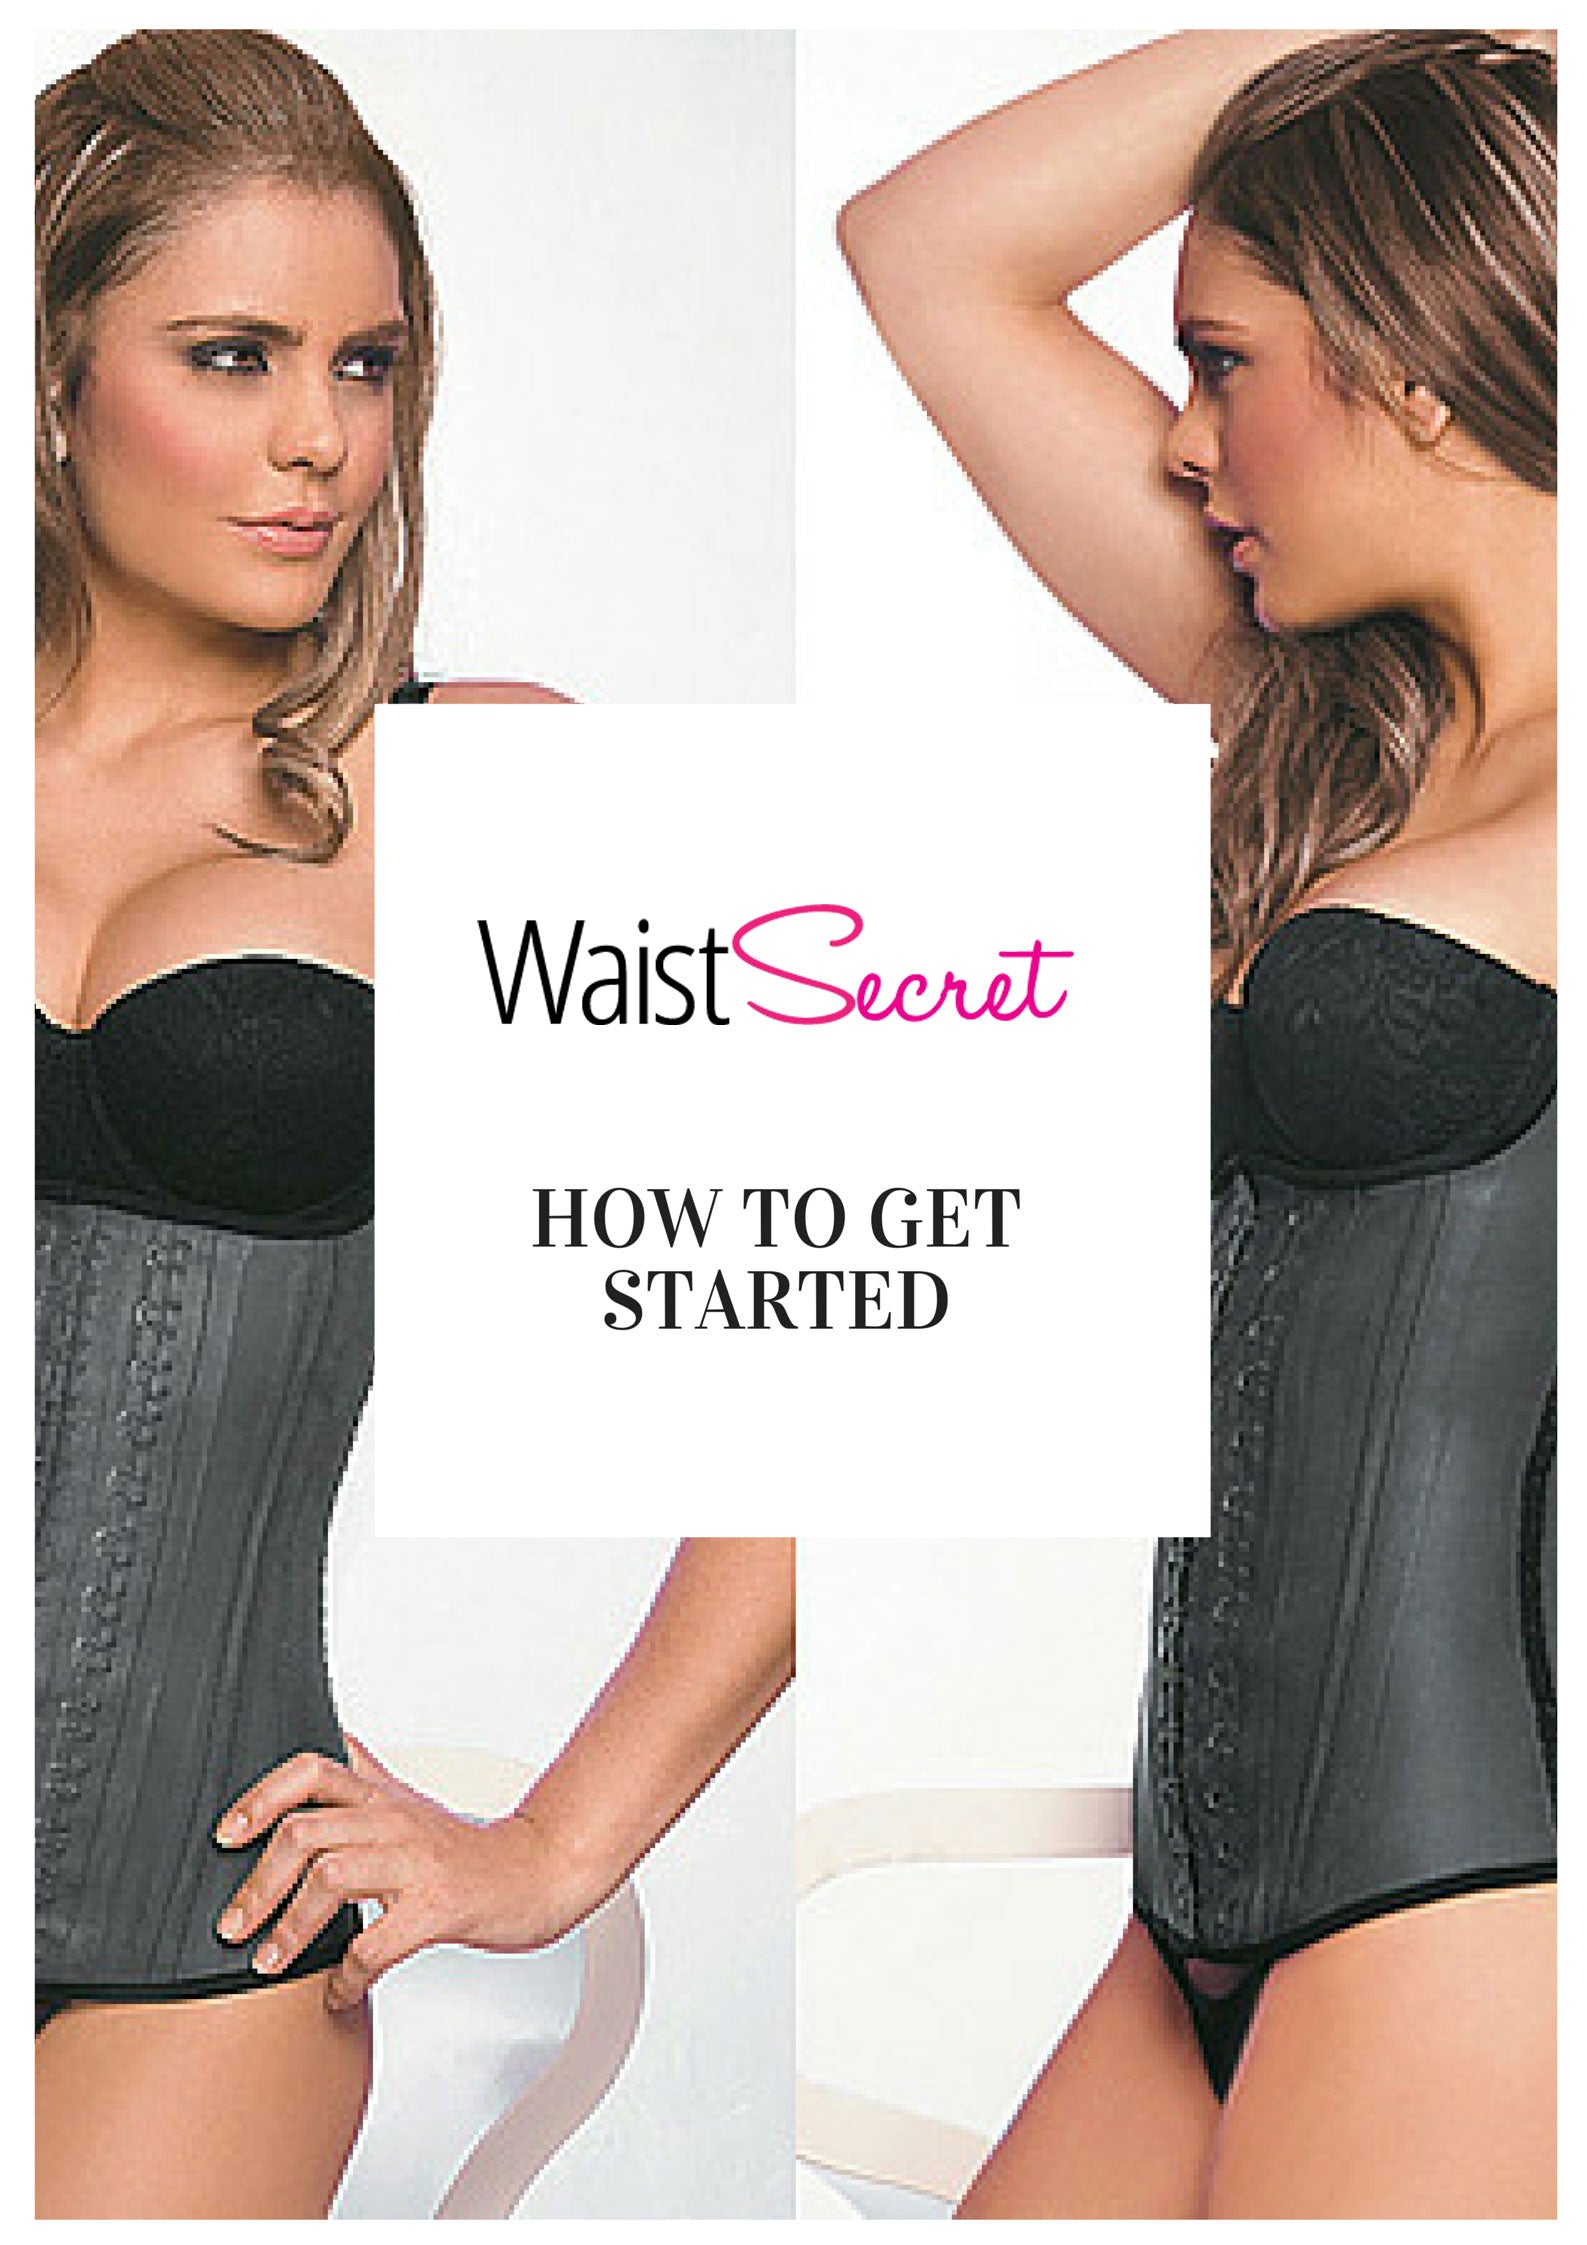 f85953f5ca We at WaistSecret want you to enjoy your journey into waist training. It is  important to pick out the right kind of waist trainer. If you are starting  out